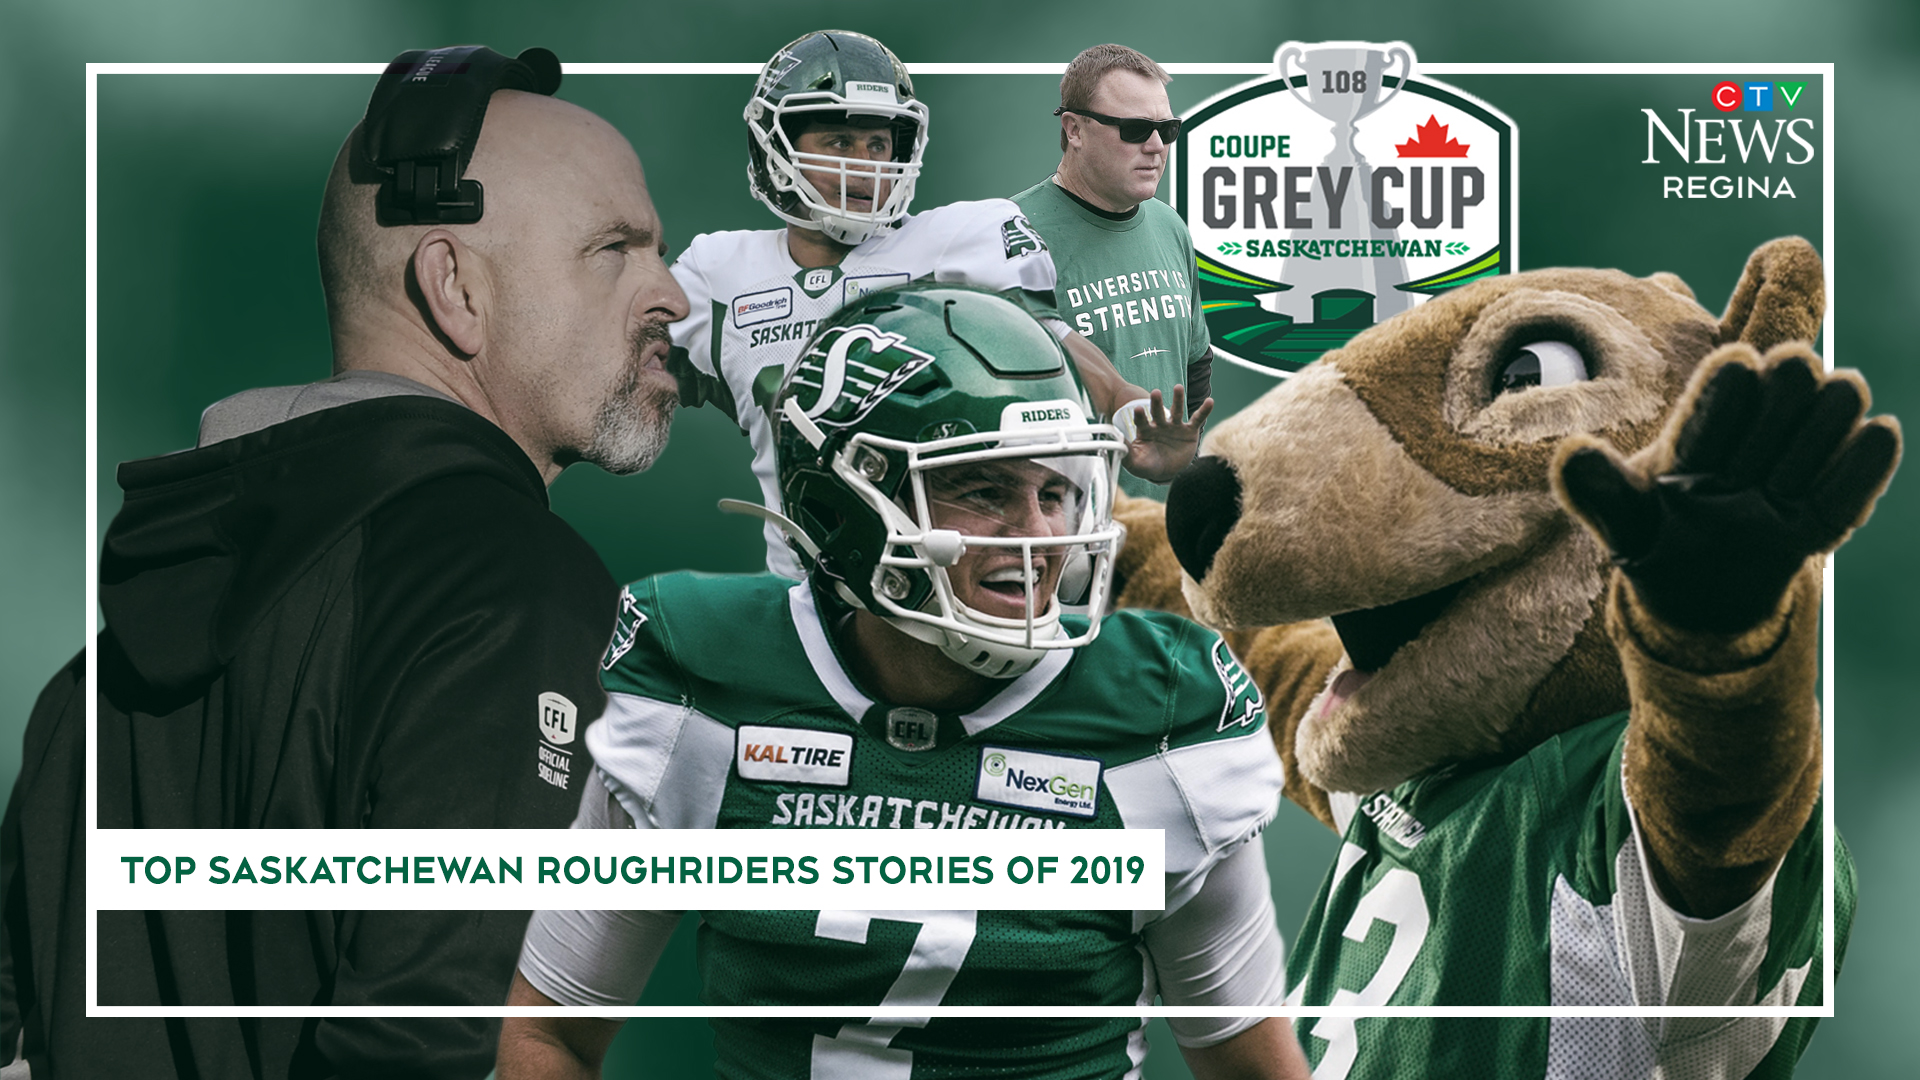 The Top Saskatchewan Roughriders Stories Of 2019 Ctv News